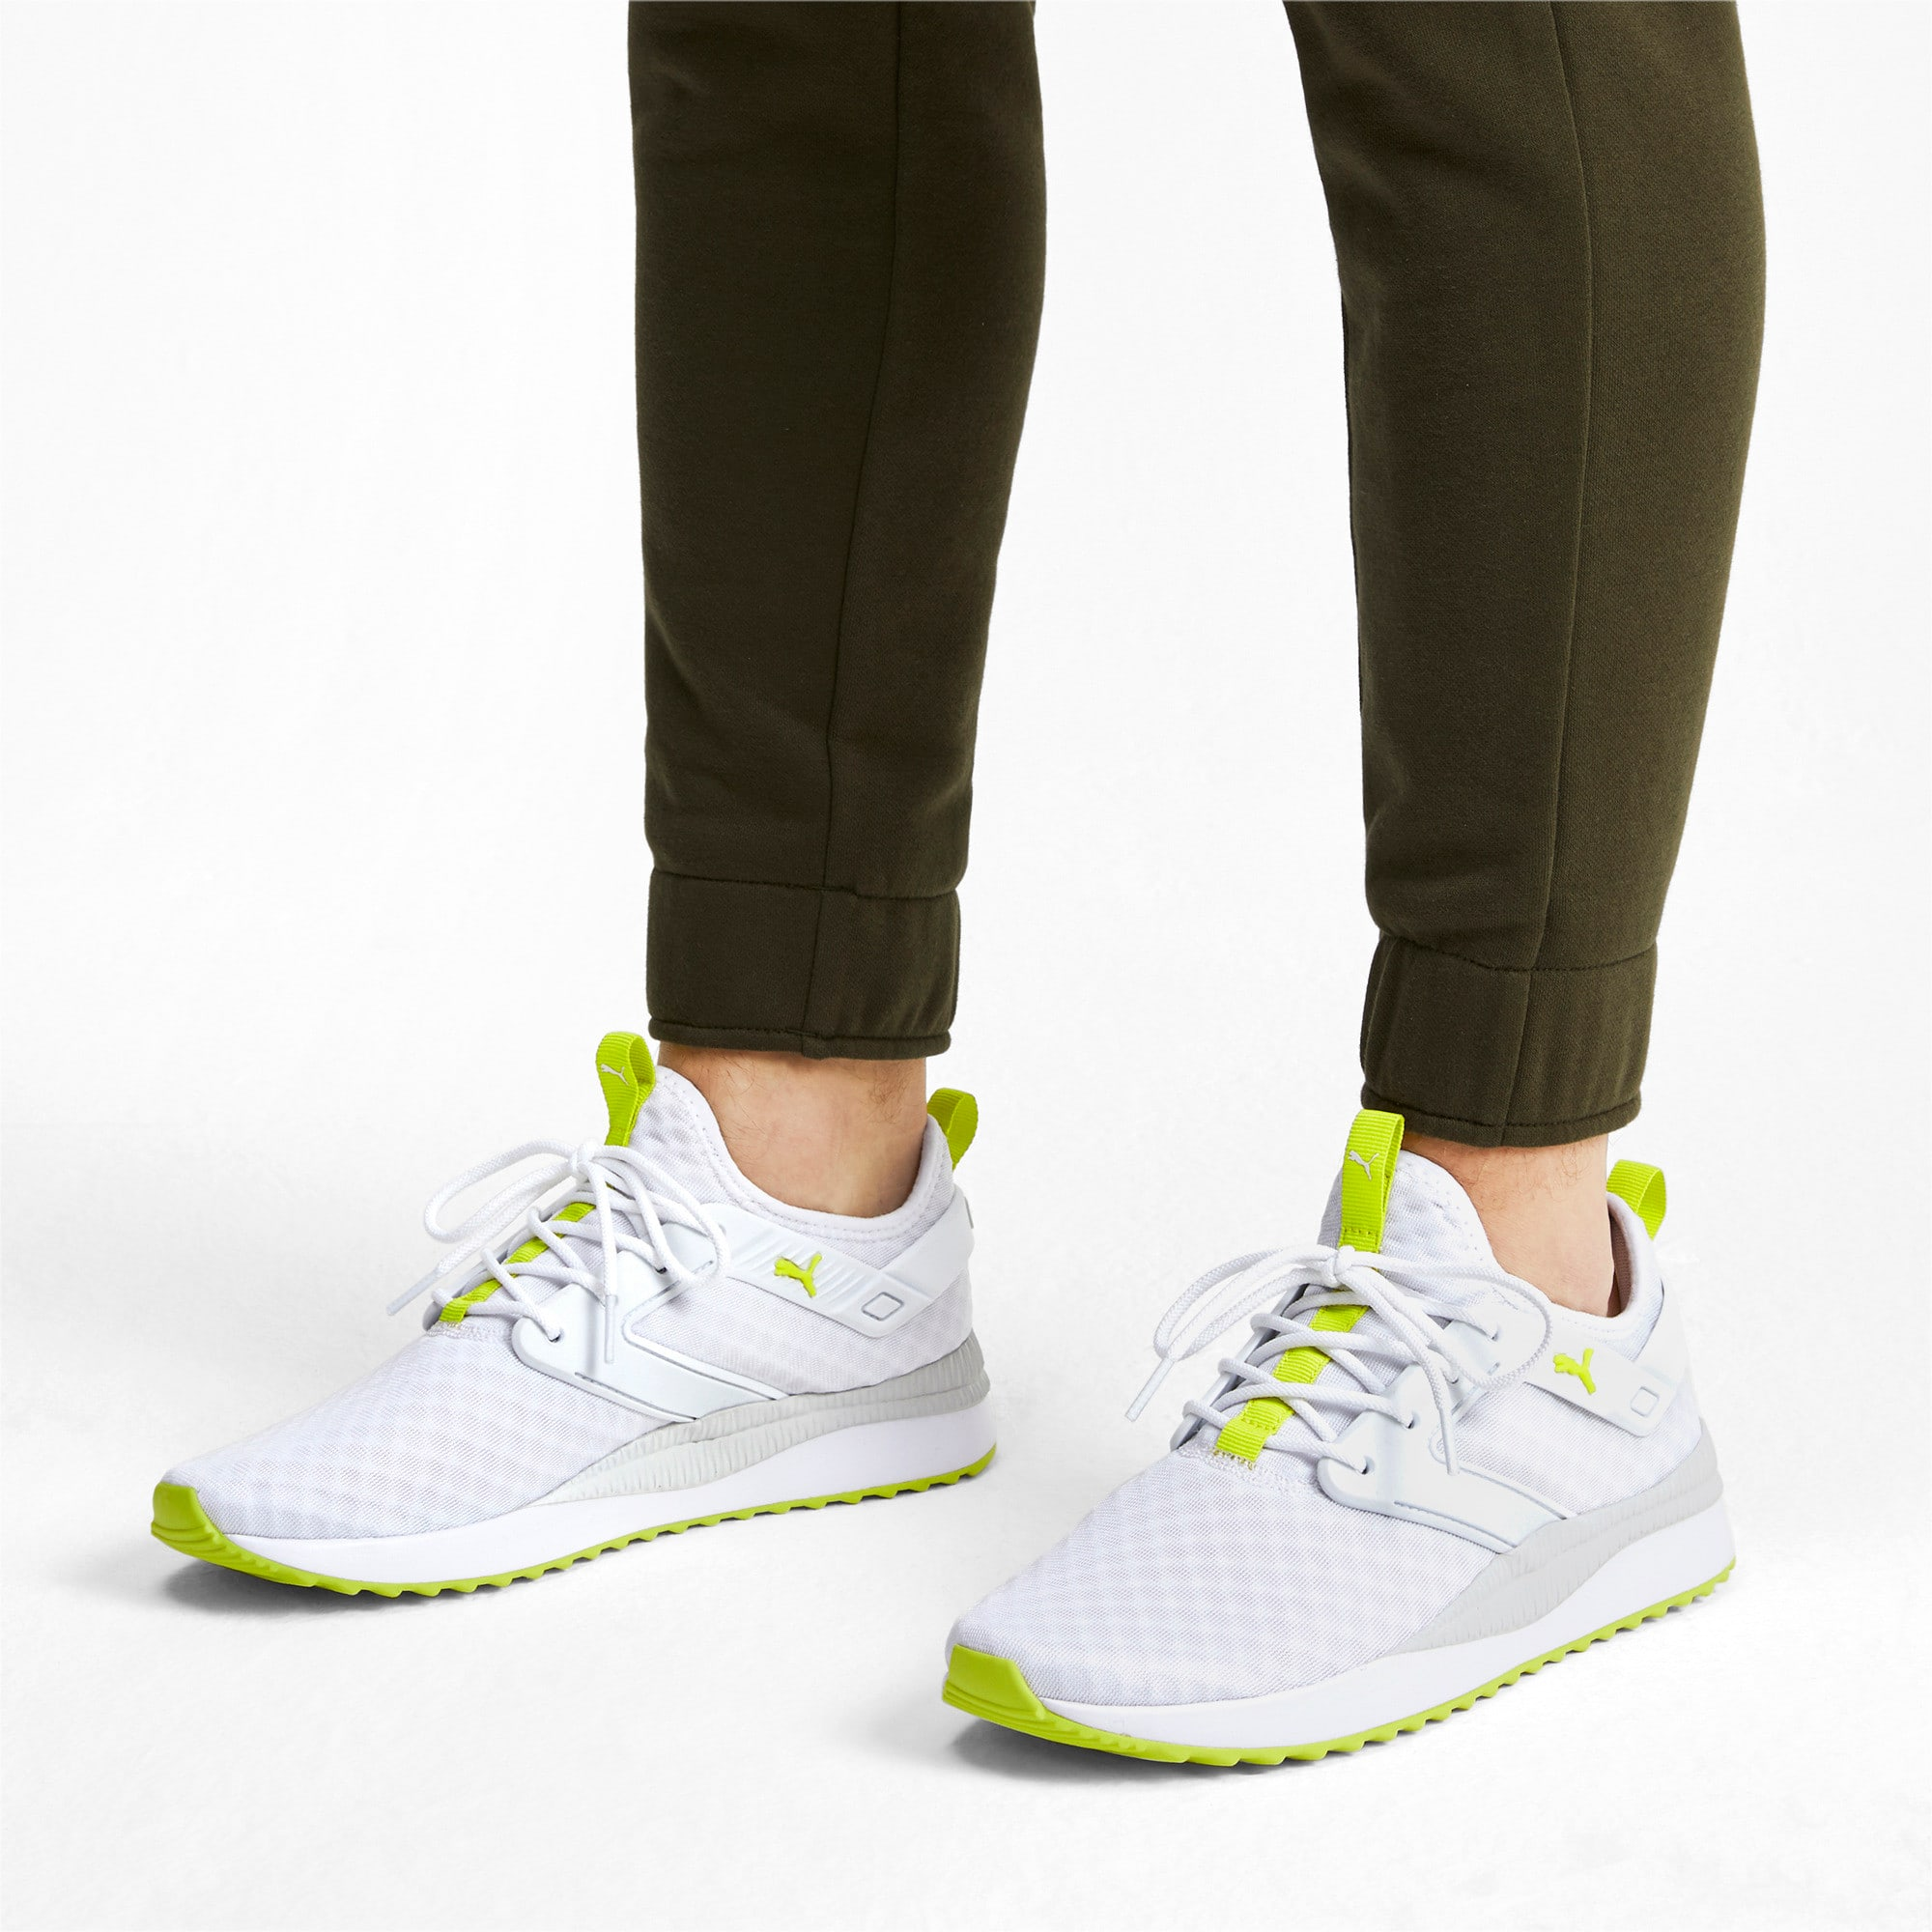 Thumbnail 2 of Pacer Next Excel Core Sneakers, Puma White-Nrgy Yellow, medium